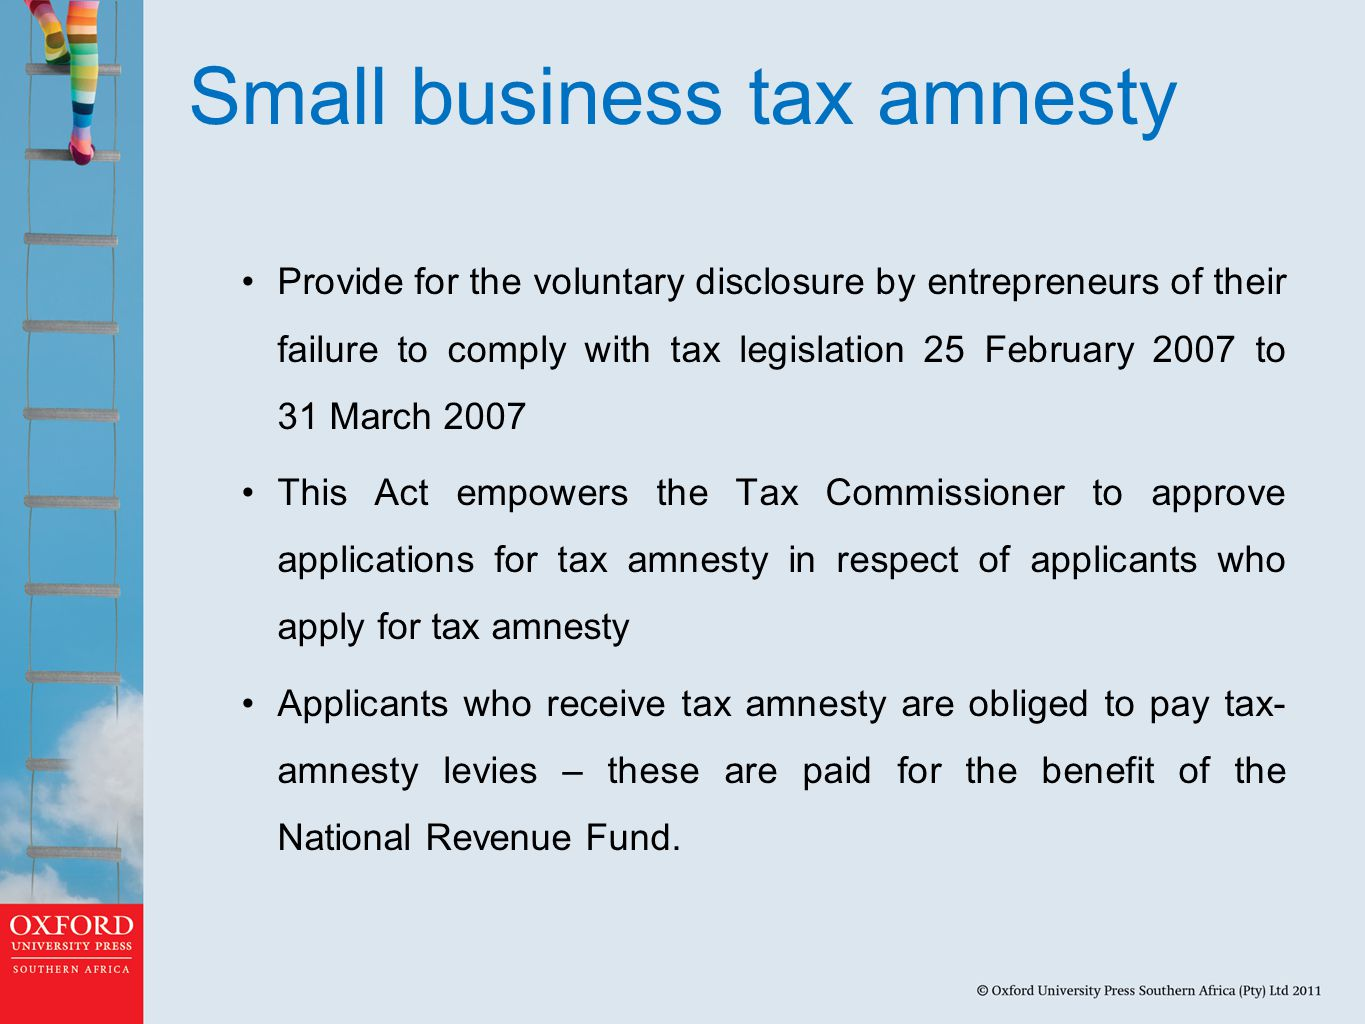 Small business tax amnesty